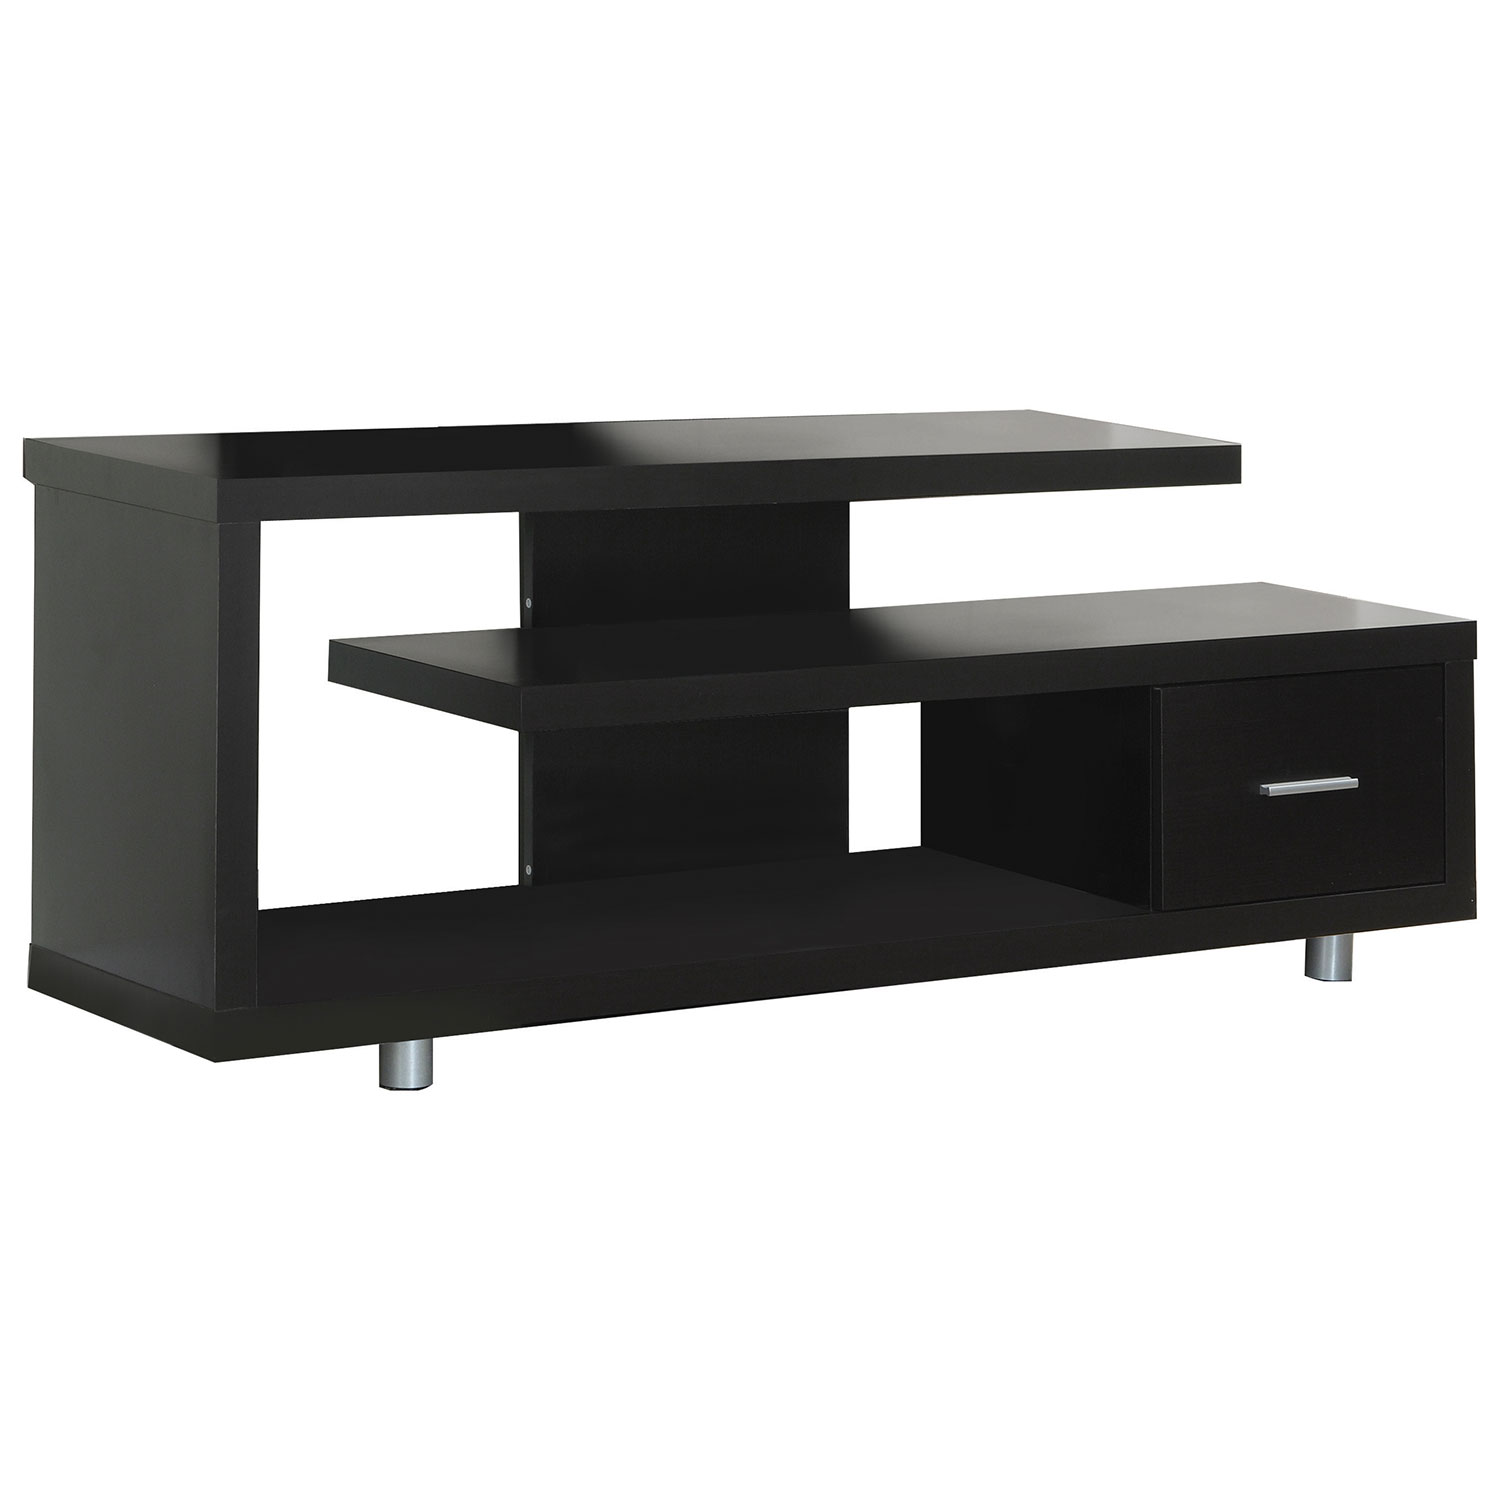 monarch open tv stand for tvs up to  (i )  cappuccino  tv  - monarch open tv stand for tvs up to  (i )  cappuccino  tv stands best buy canada